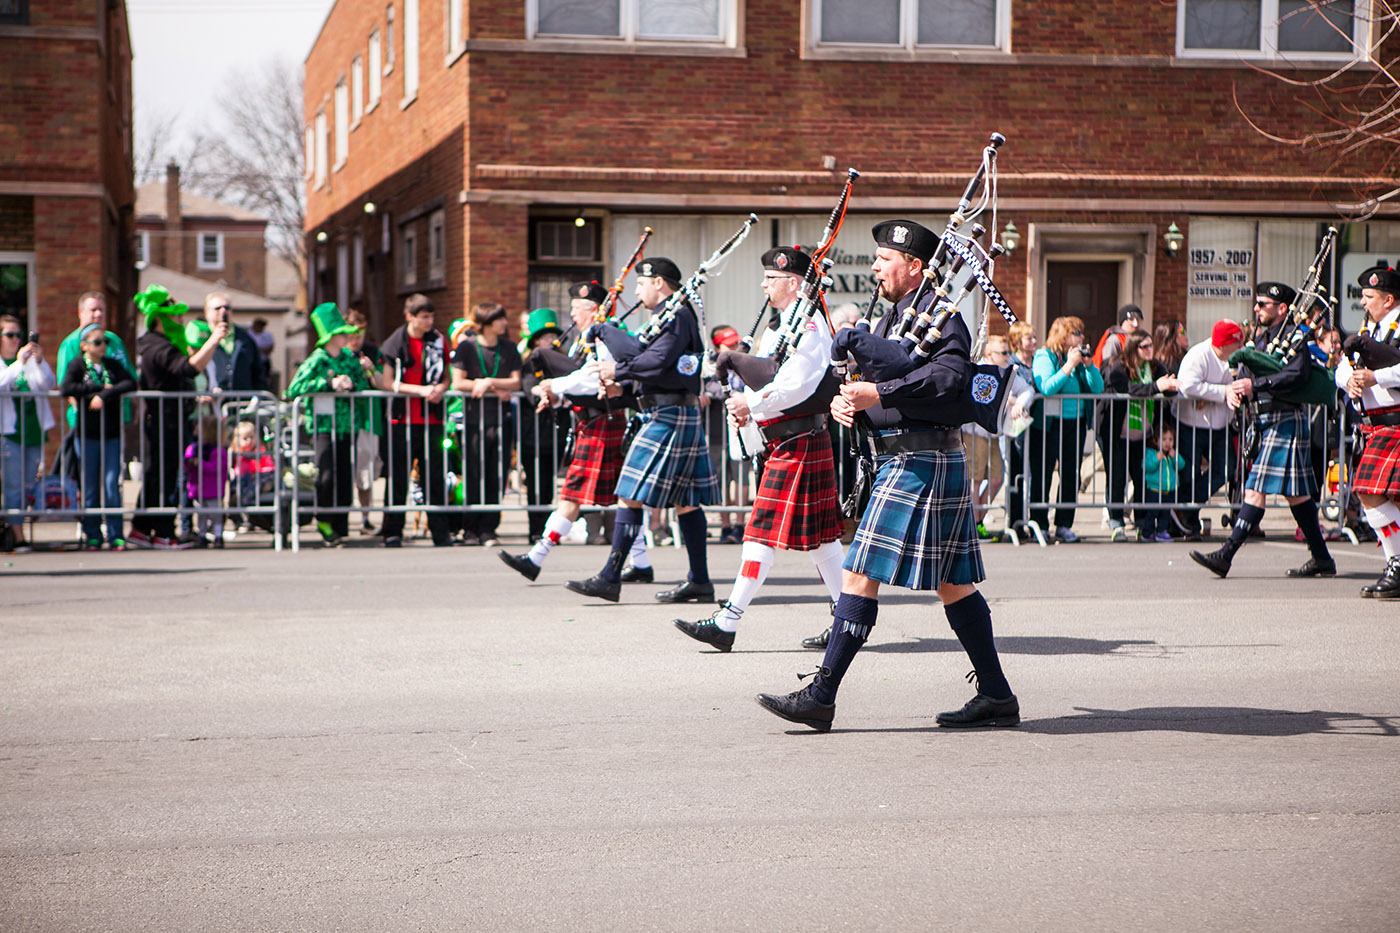 Bagpipers at the Chicago South Side Irish Parade 2015 - St. Patrick's Day